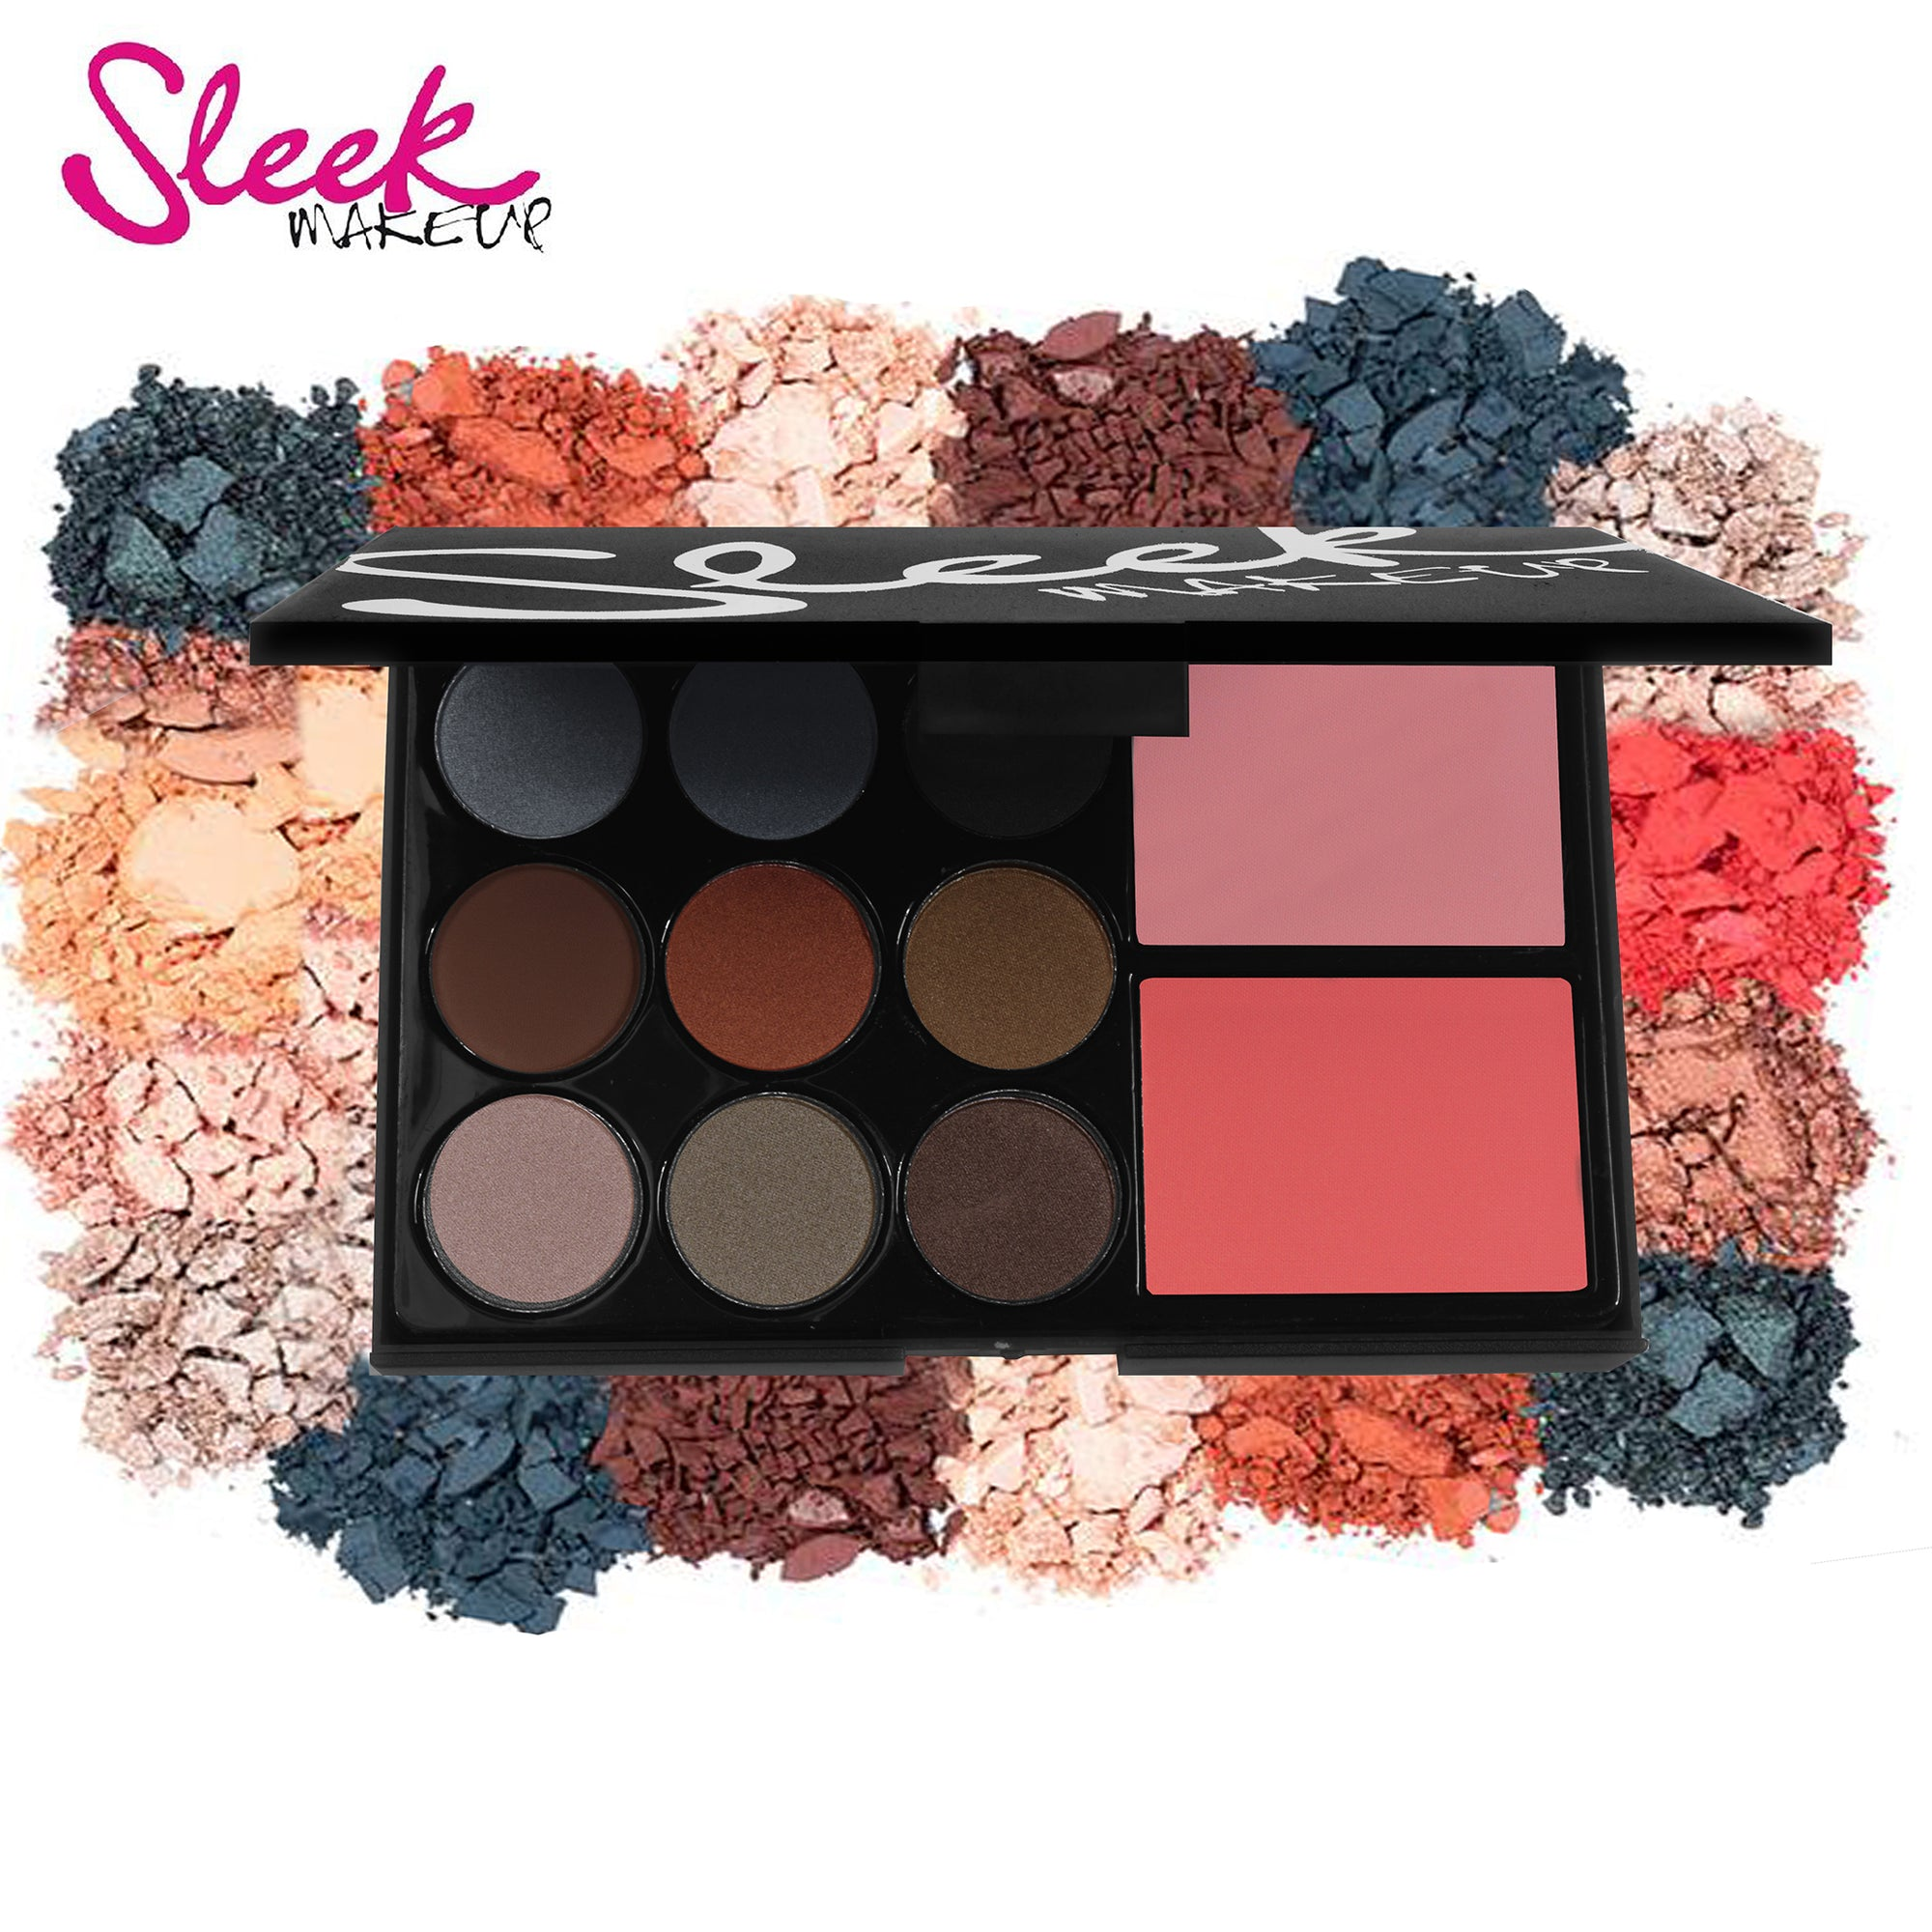 Sleek Makeup IGNITED 11 COLOR EYESHADOW PALETTE-NA10384